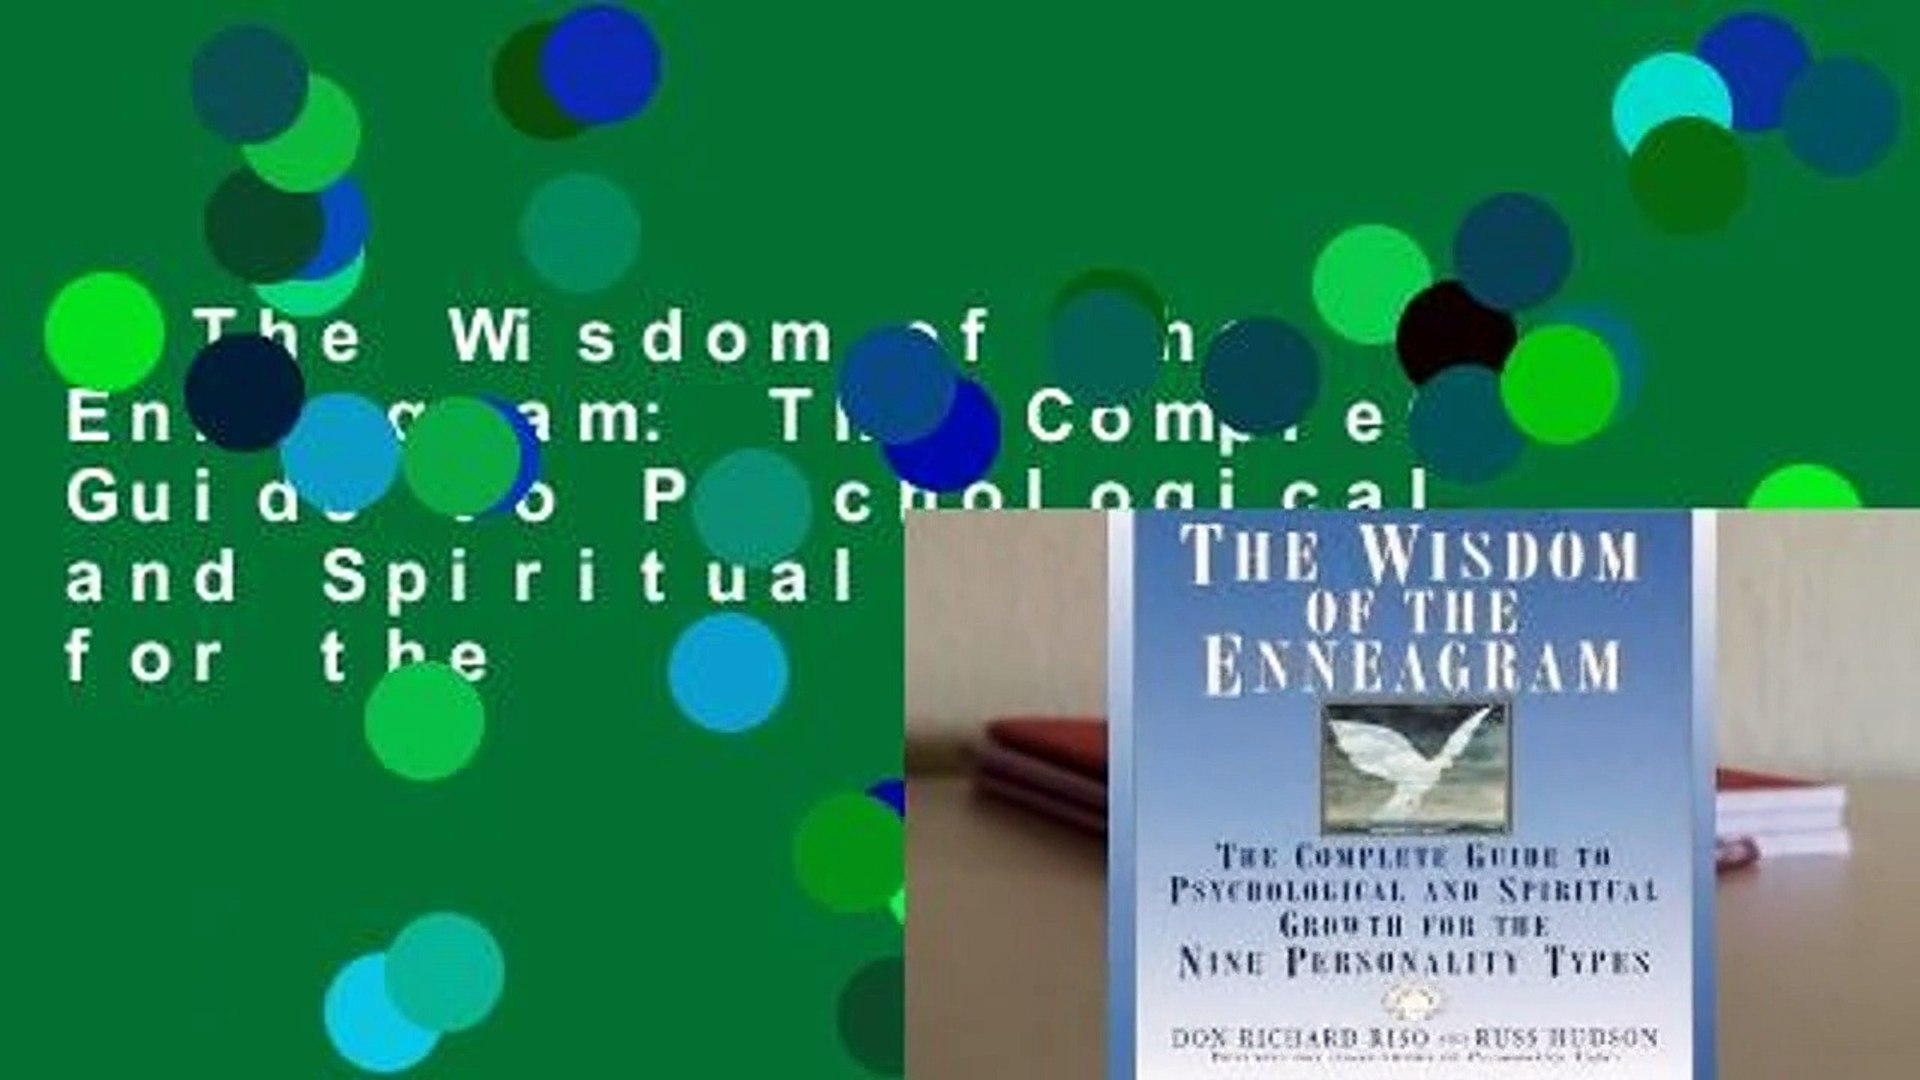 The Wisdom of the Enneagram: The Complete Guide to Psychological and Spiritual Growth for the